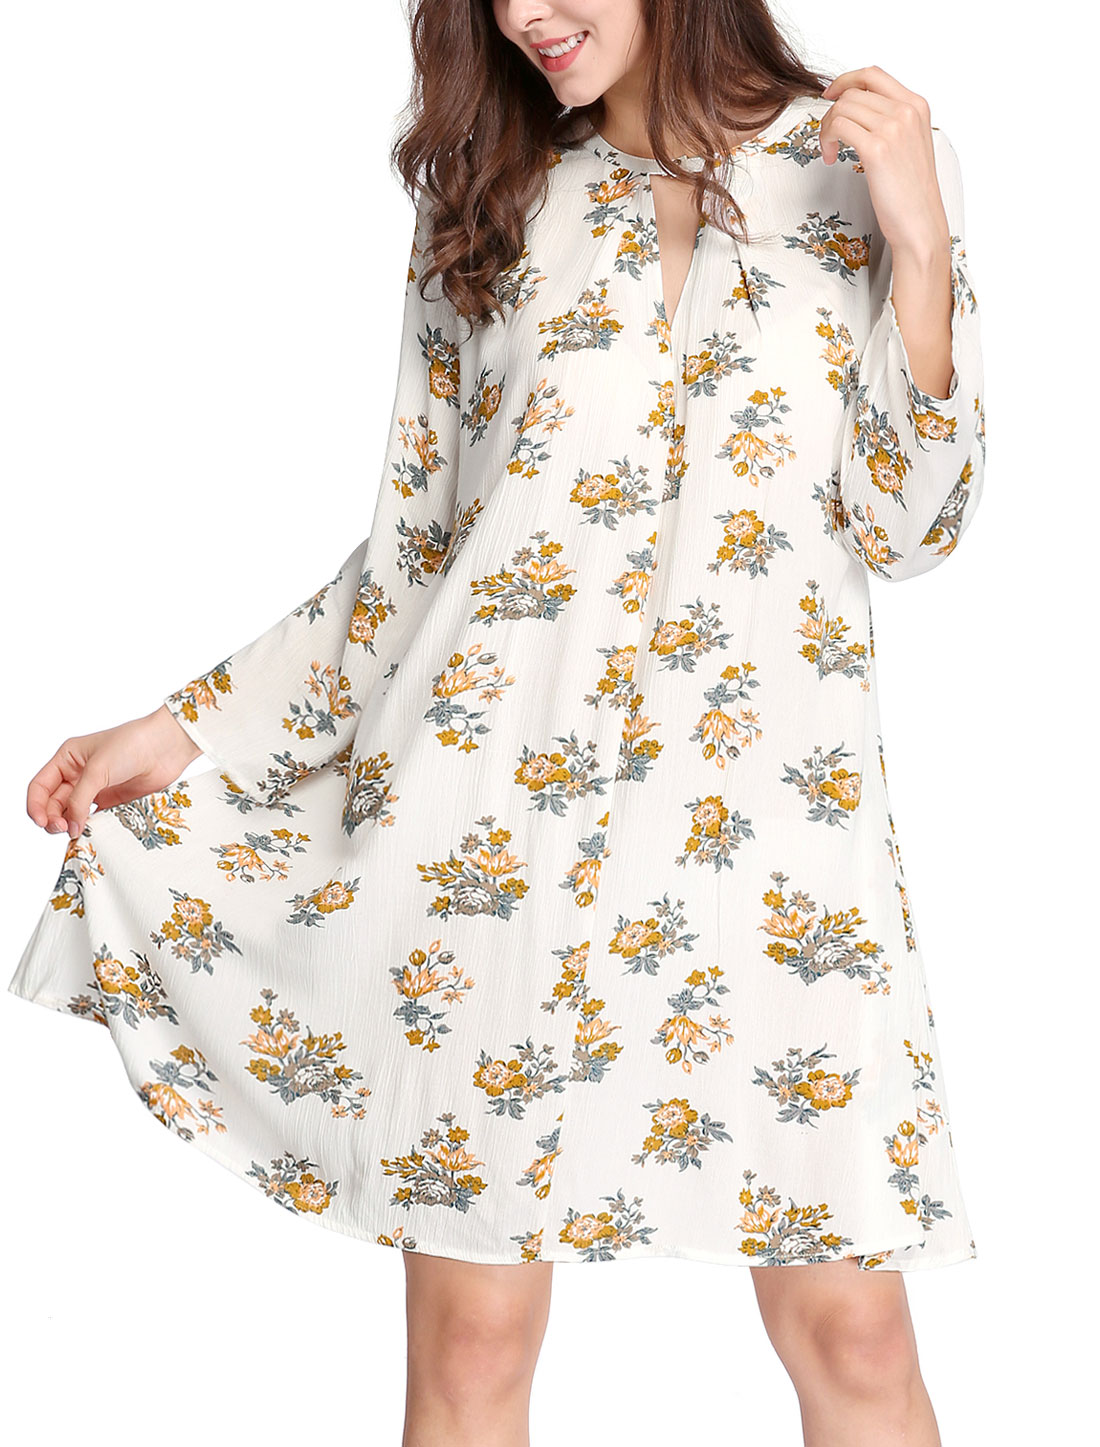 Women Keyhole Front Floral Prints Oversized Swing Dress White M